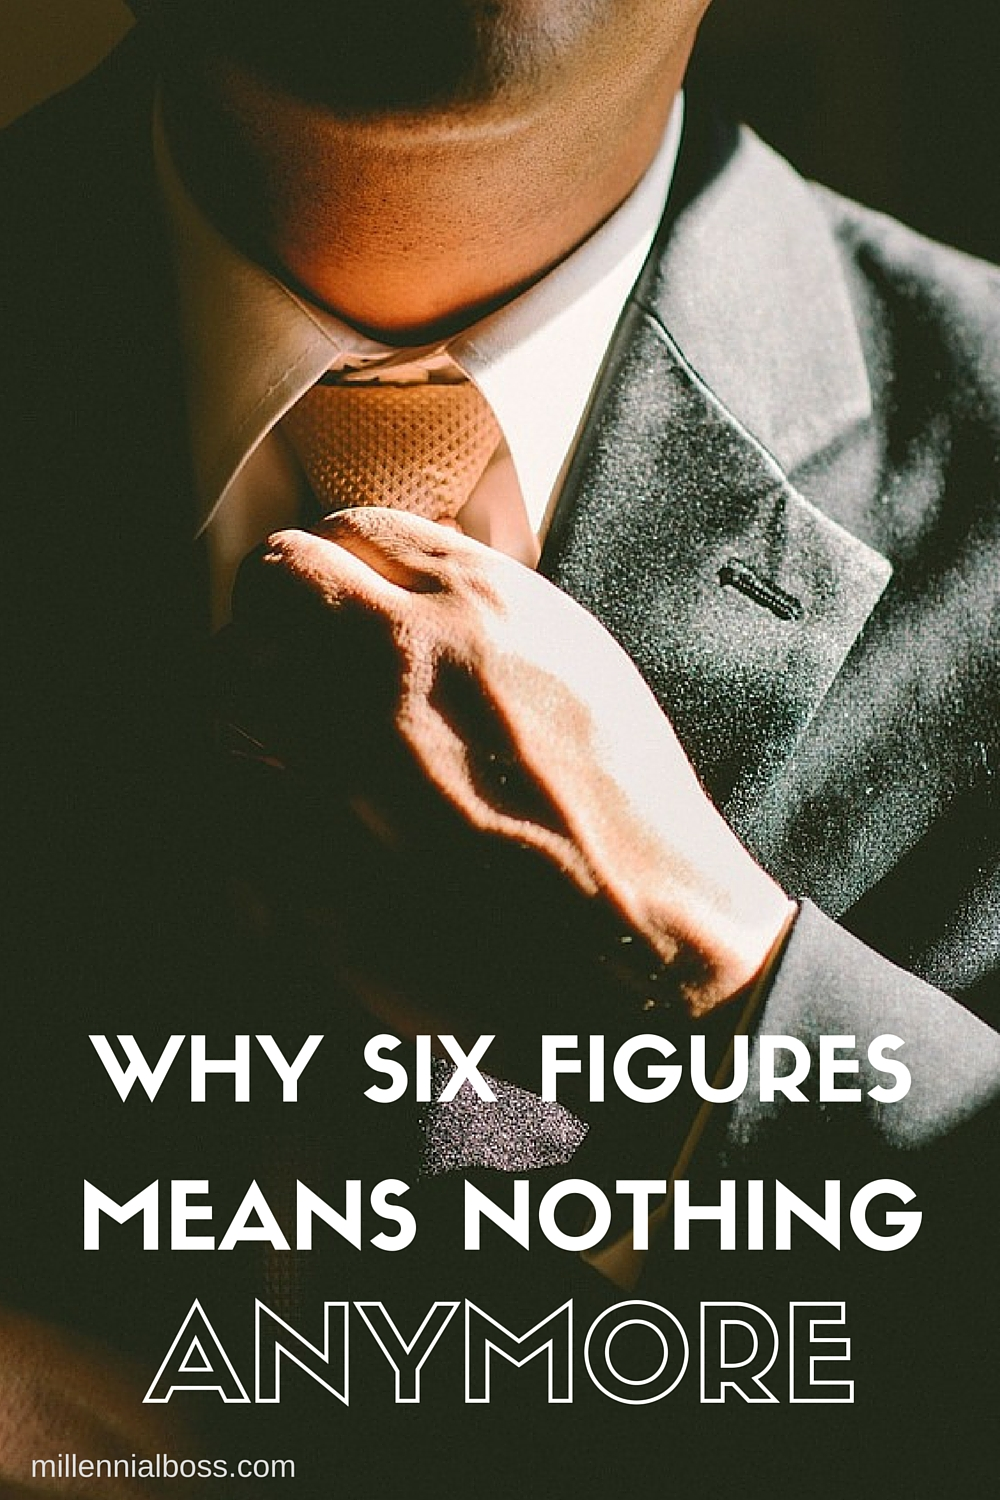 Why Six Figures Means Nothing Anymore